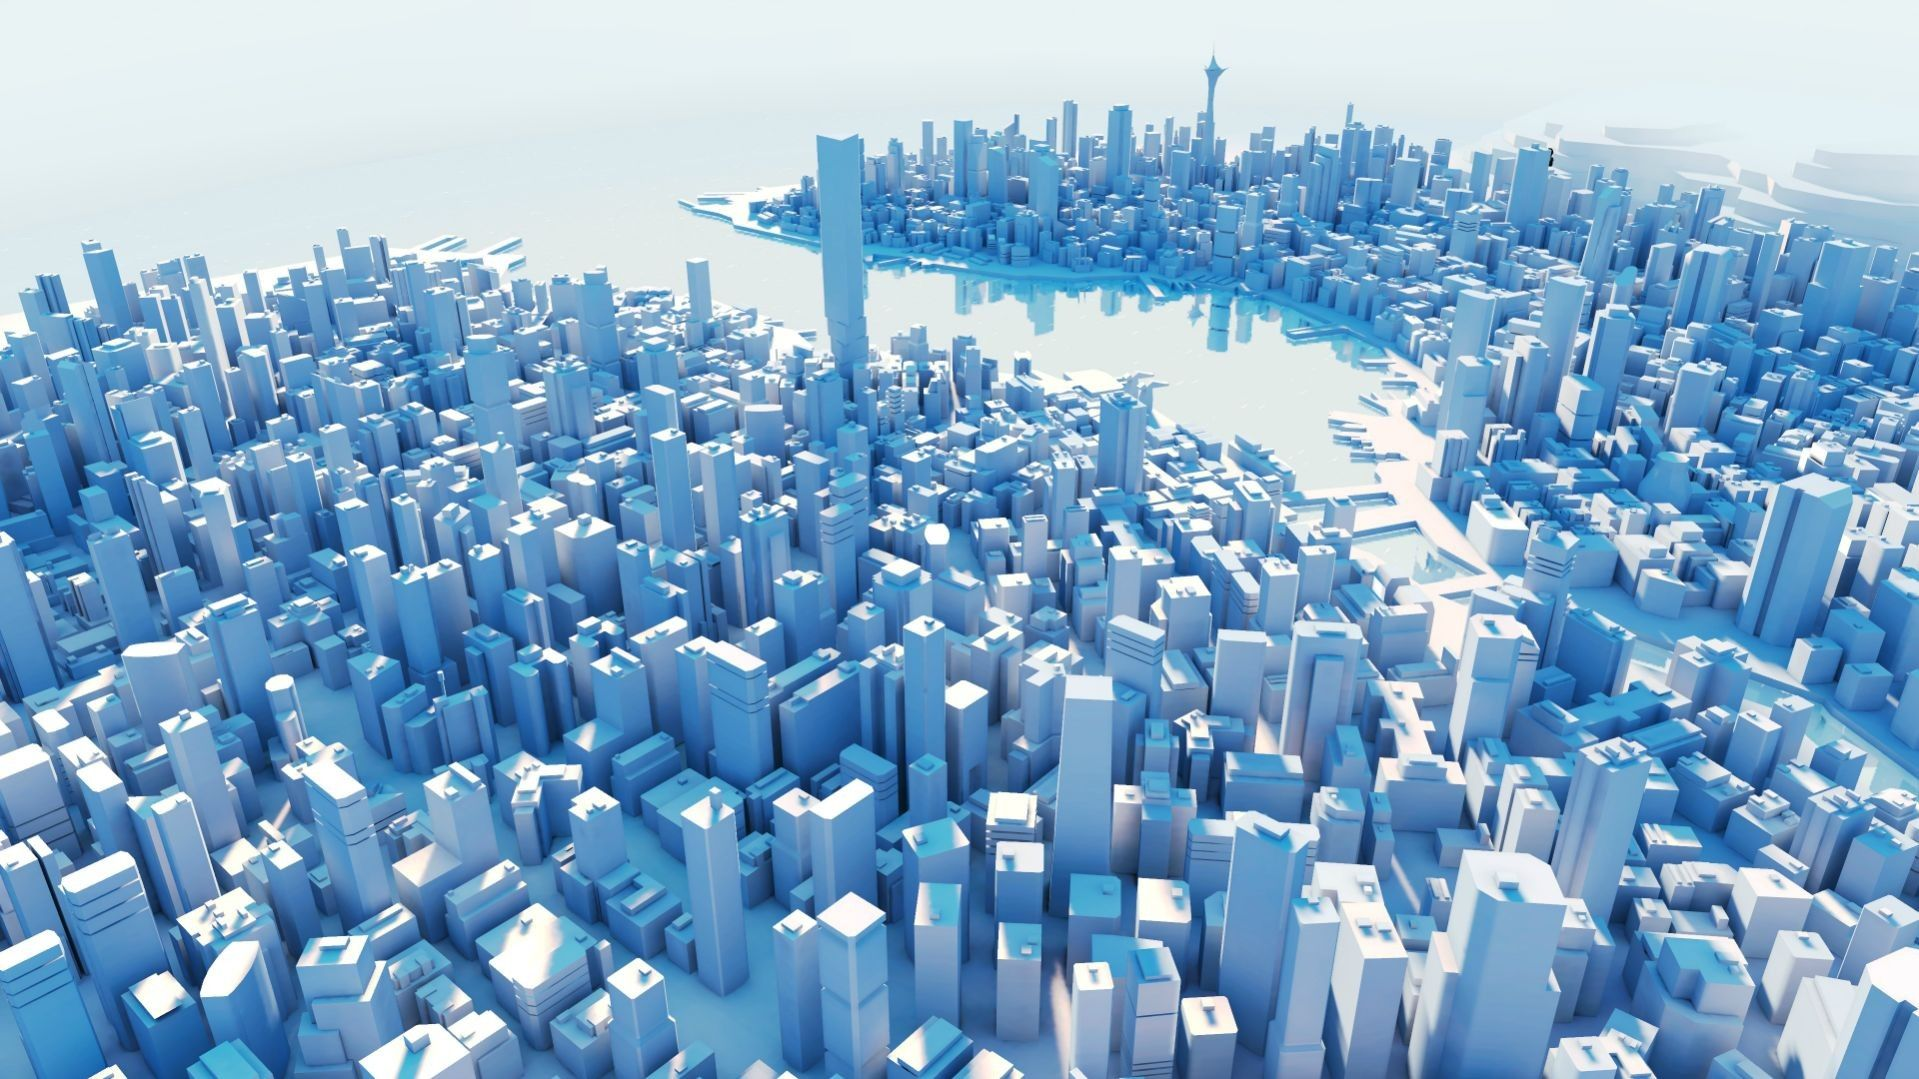 General 1919x1079 architecture city Mirror's Edge